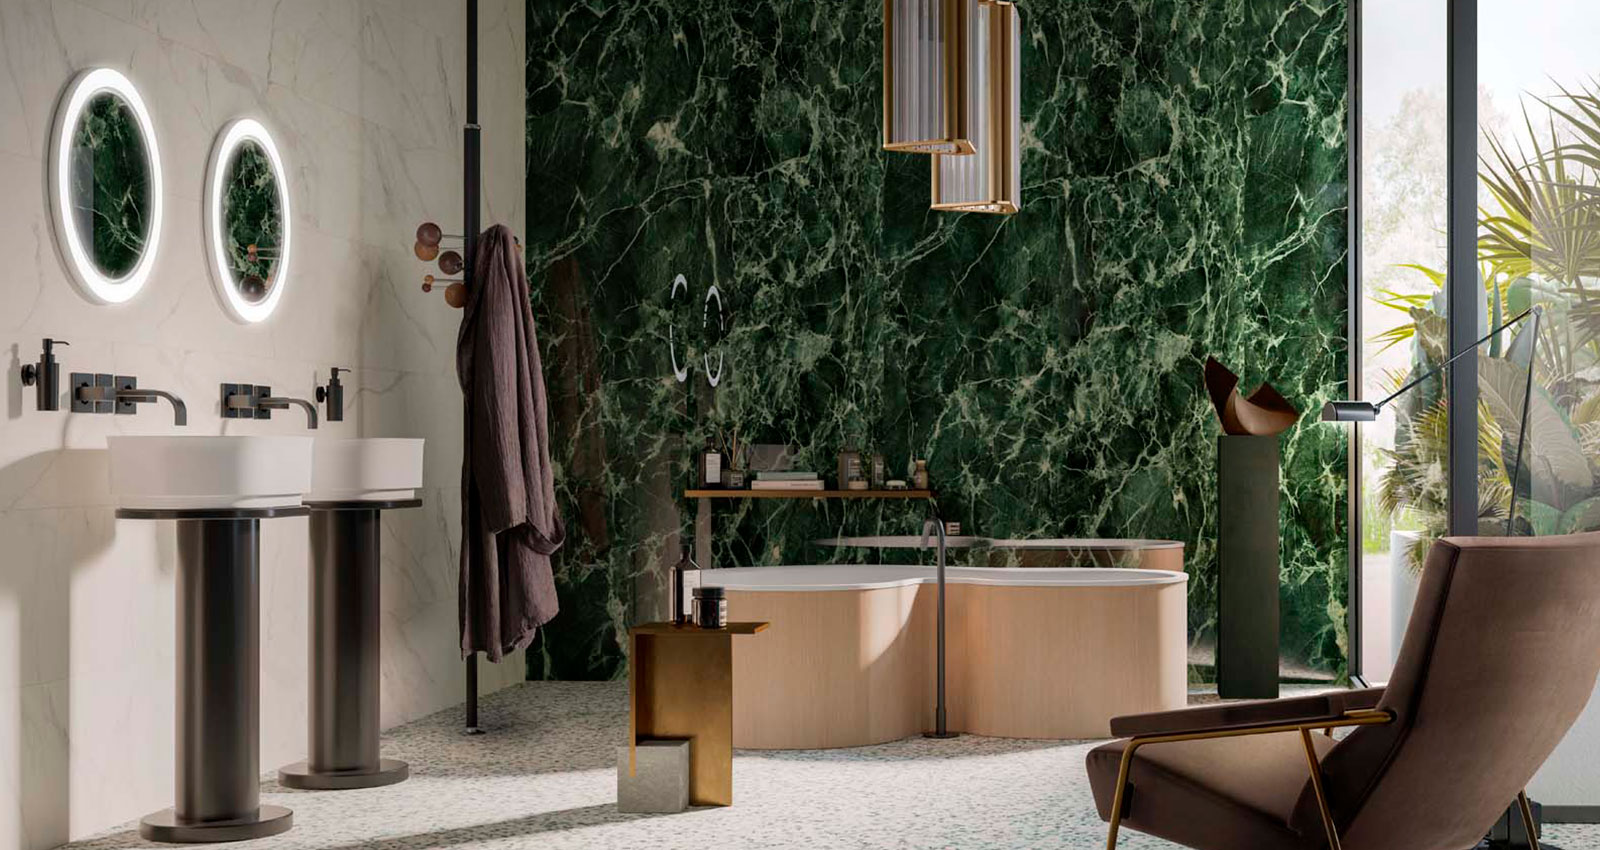 The Mansion Bathroom Wellbeing For The Mind In A Natural Space Marazzi